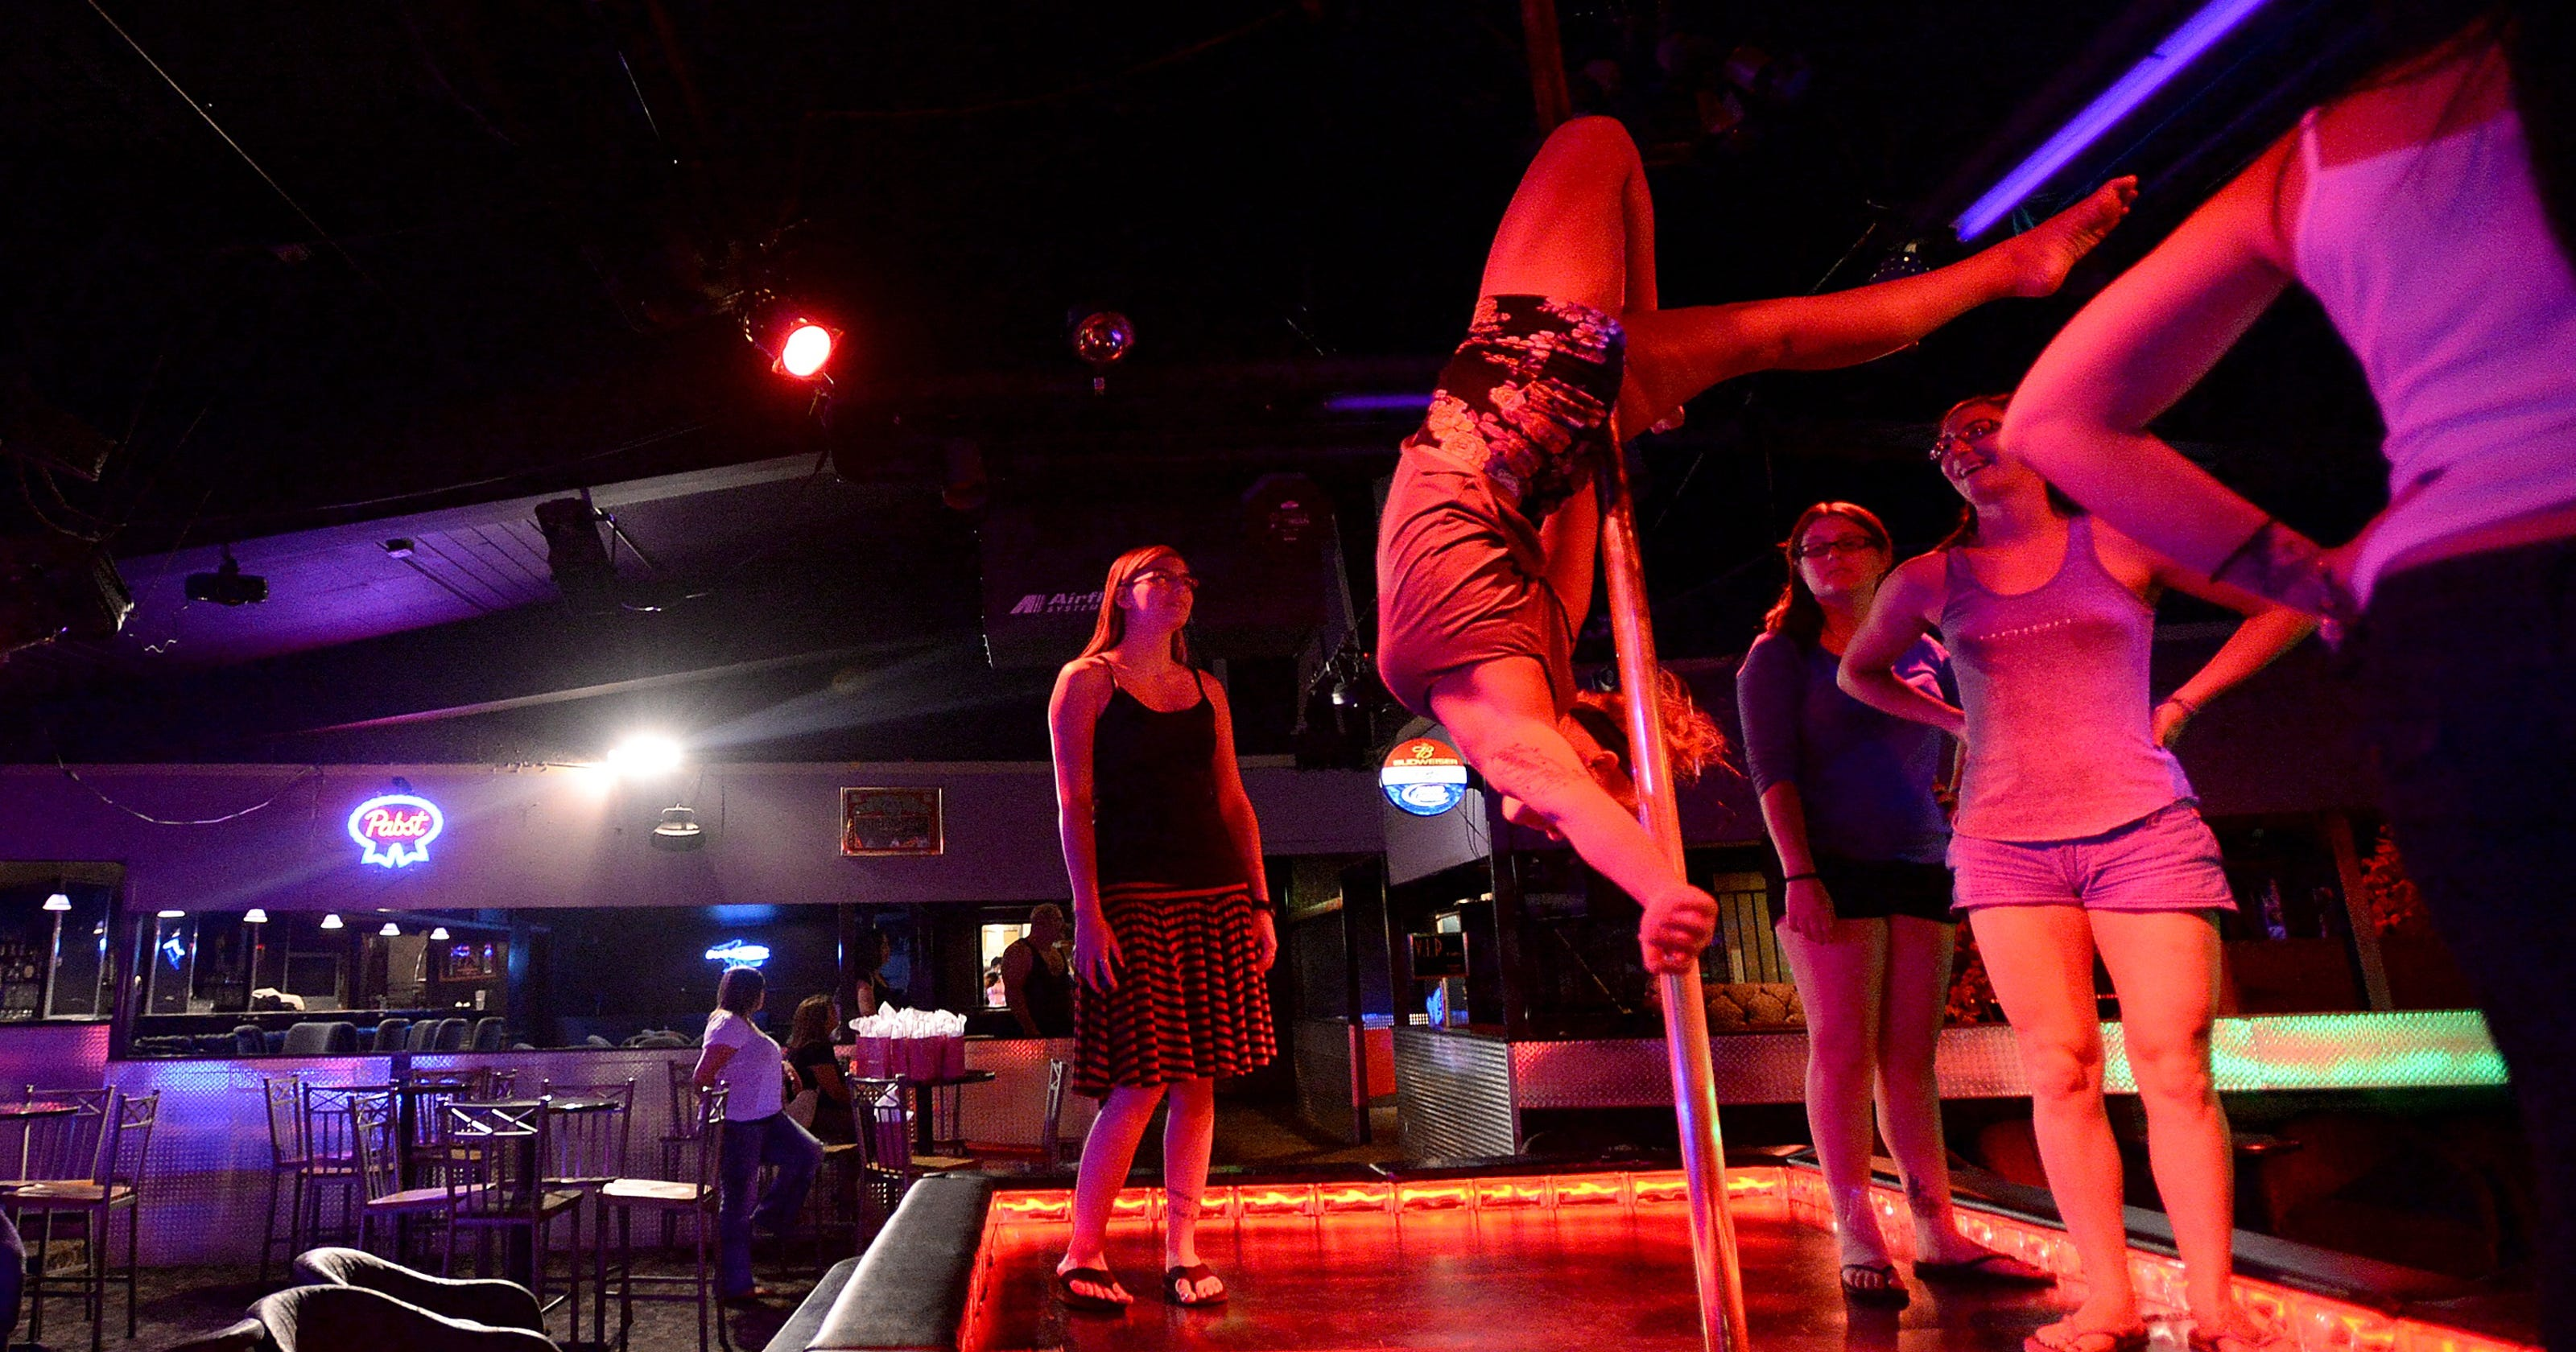 #NoCoAsk: Why doesn't Fort Collins have a strip club?